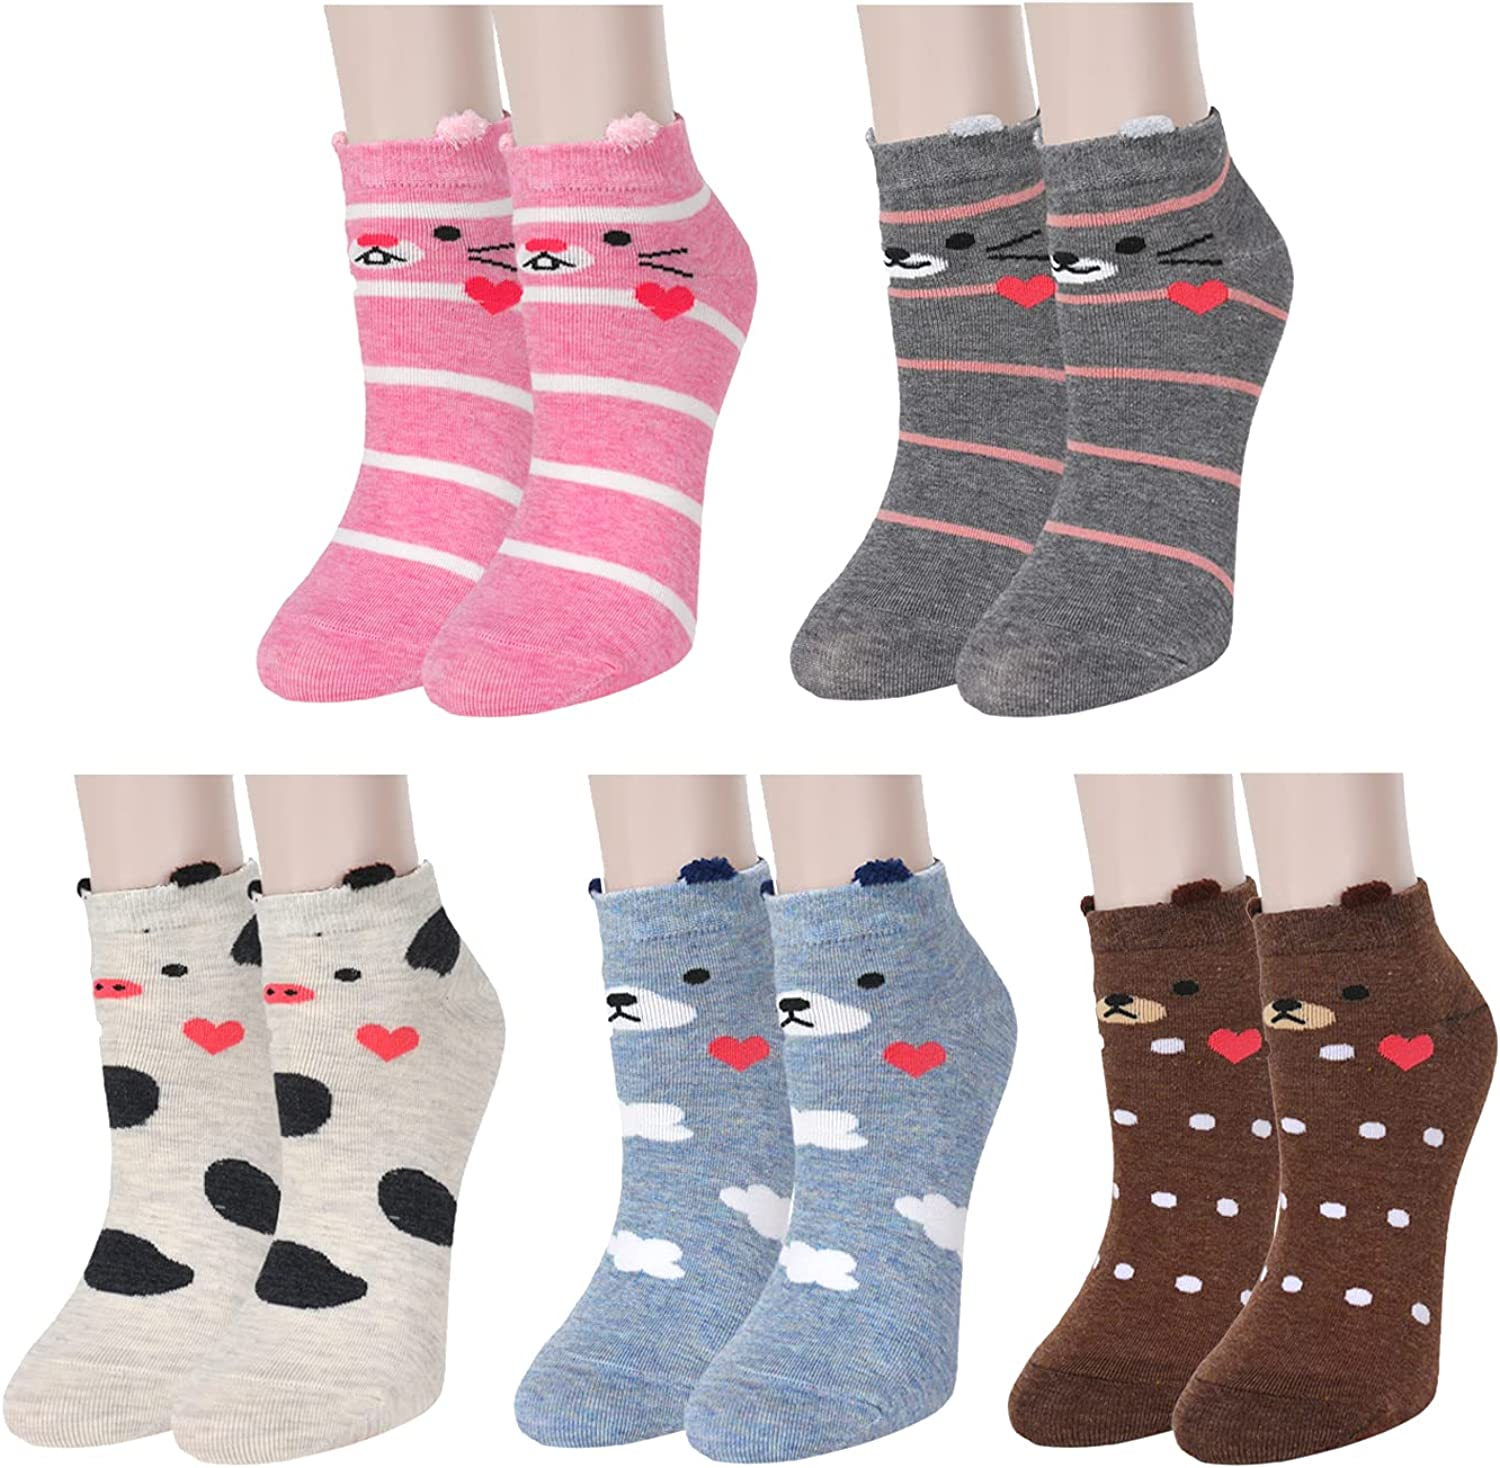 Womens Ankle Socks for Girls Cute Cut Soft Cozy Detroit Mall Popular Cotton Funny Low